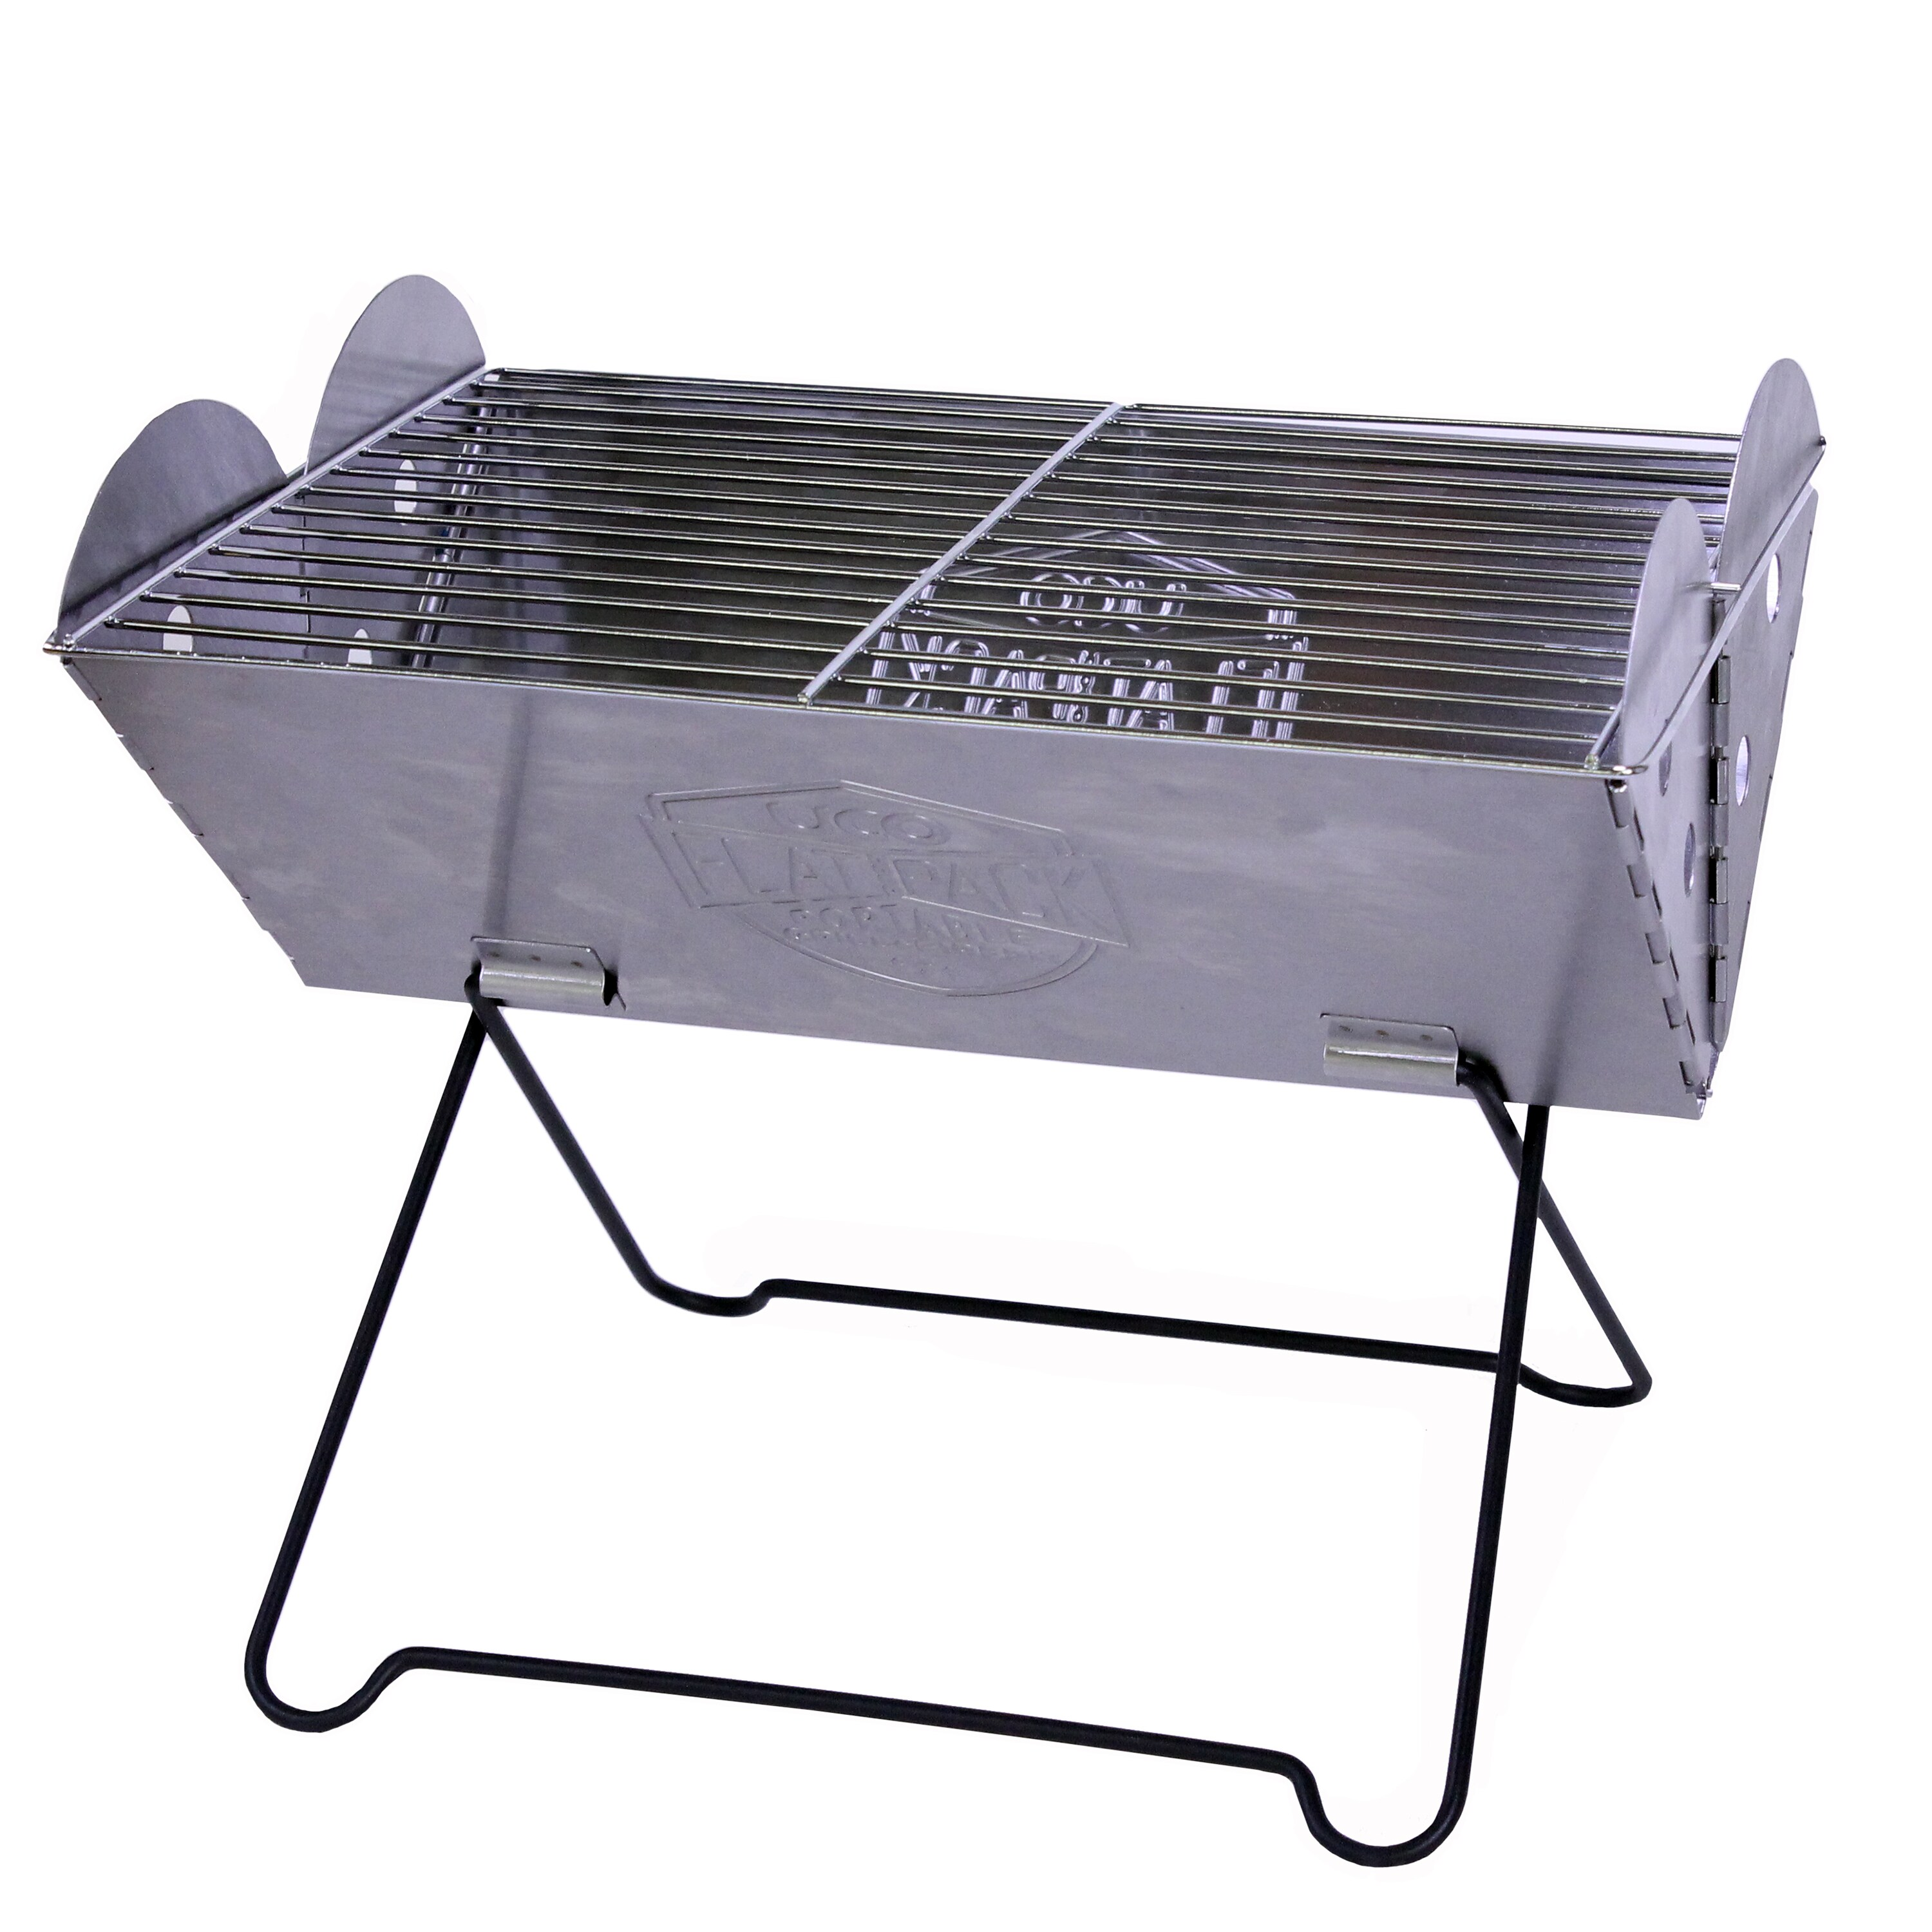 Flat Pack Outdoor Kitchens Uco Flatpack Grill And Firepit